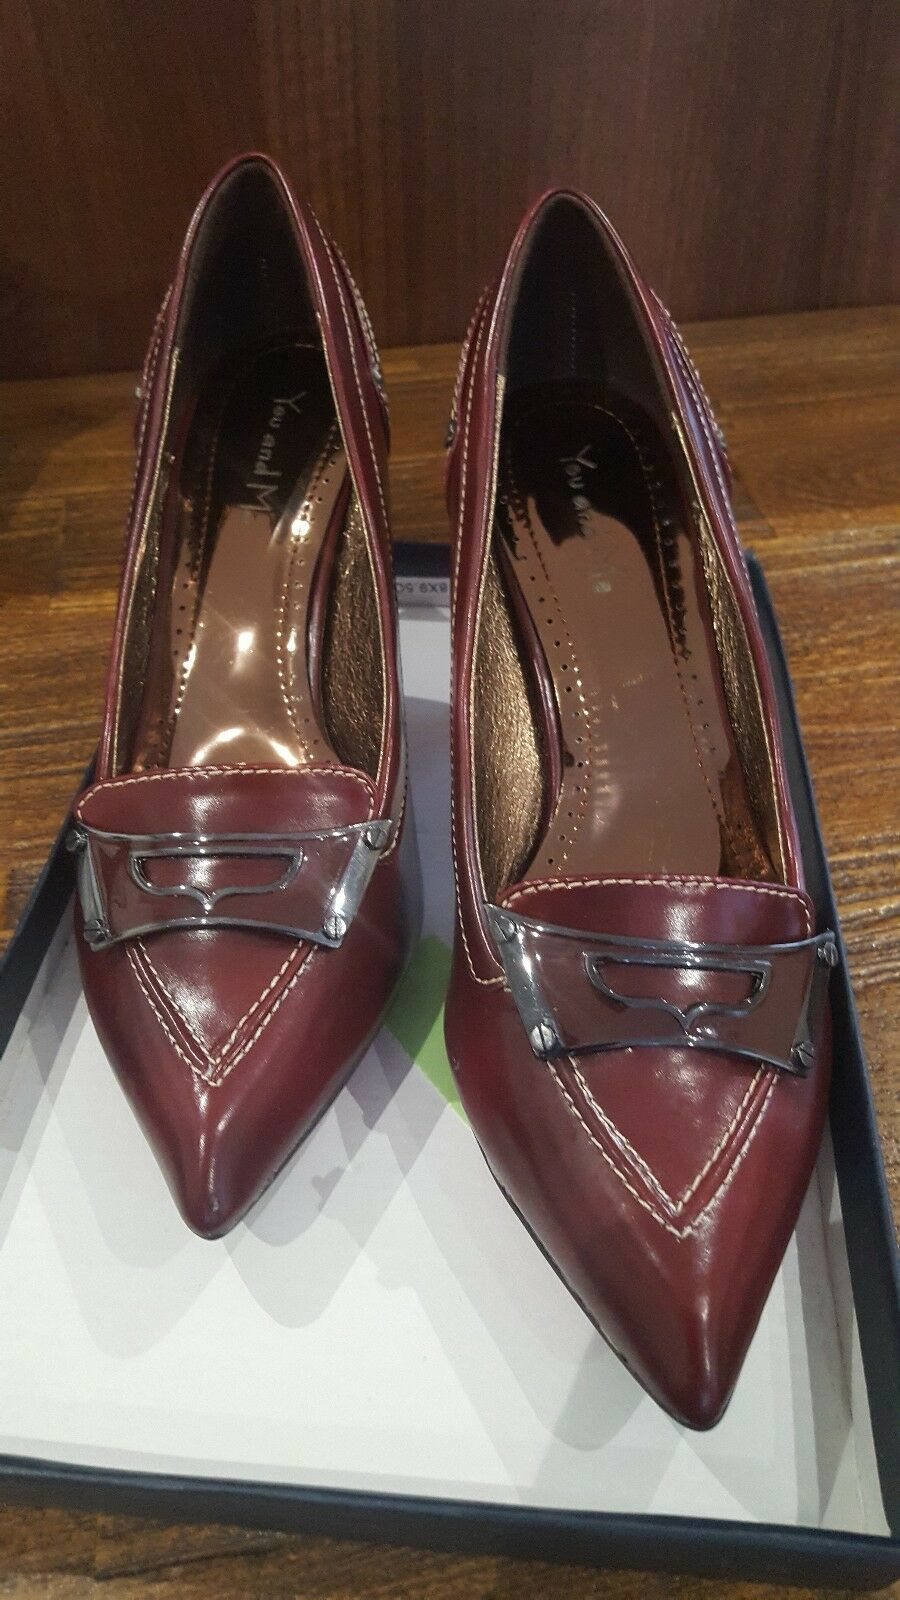 size 5 vintage looking court design shoe with buckle style design court on front 6c7566